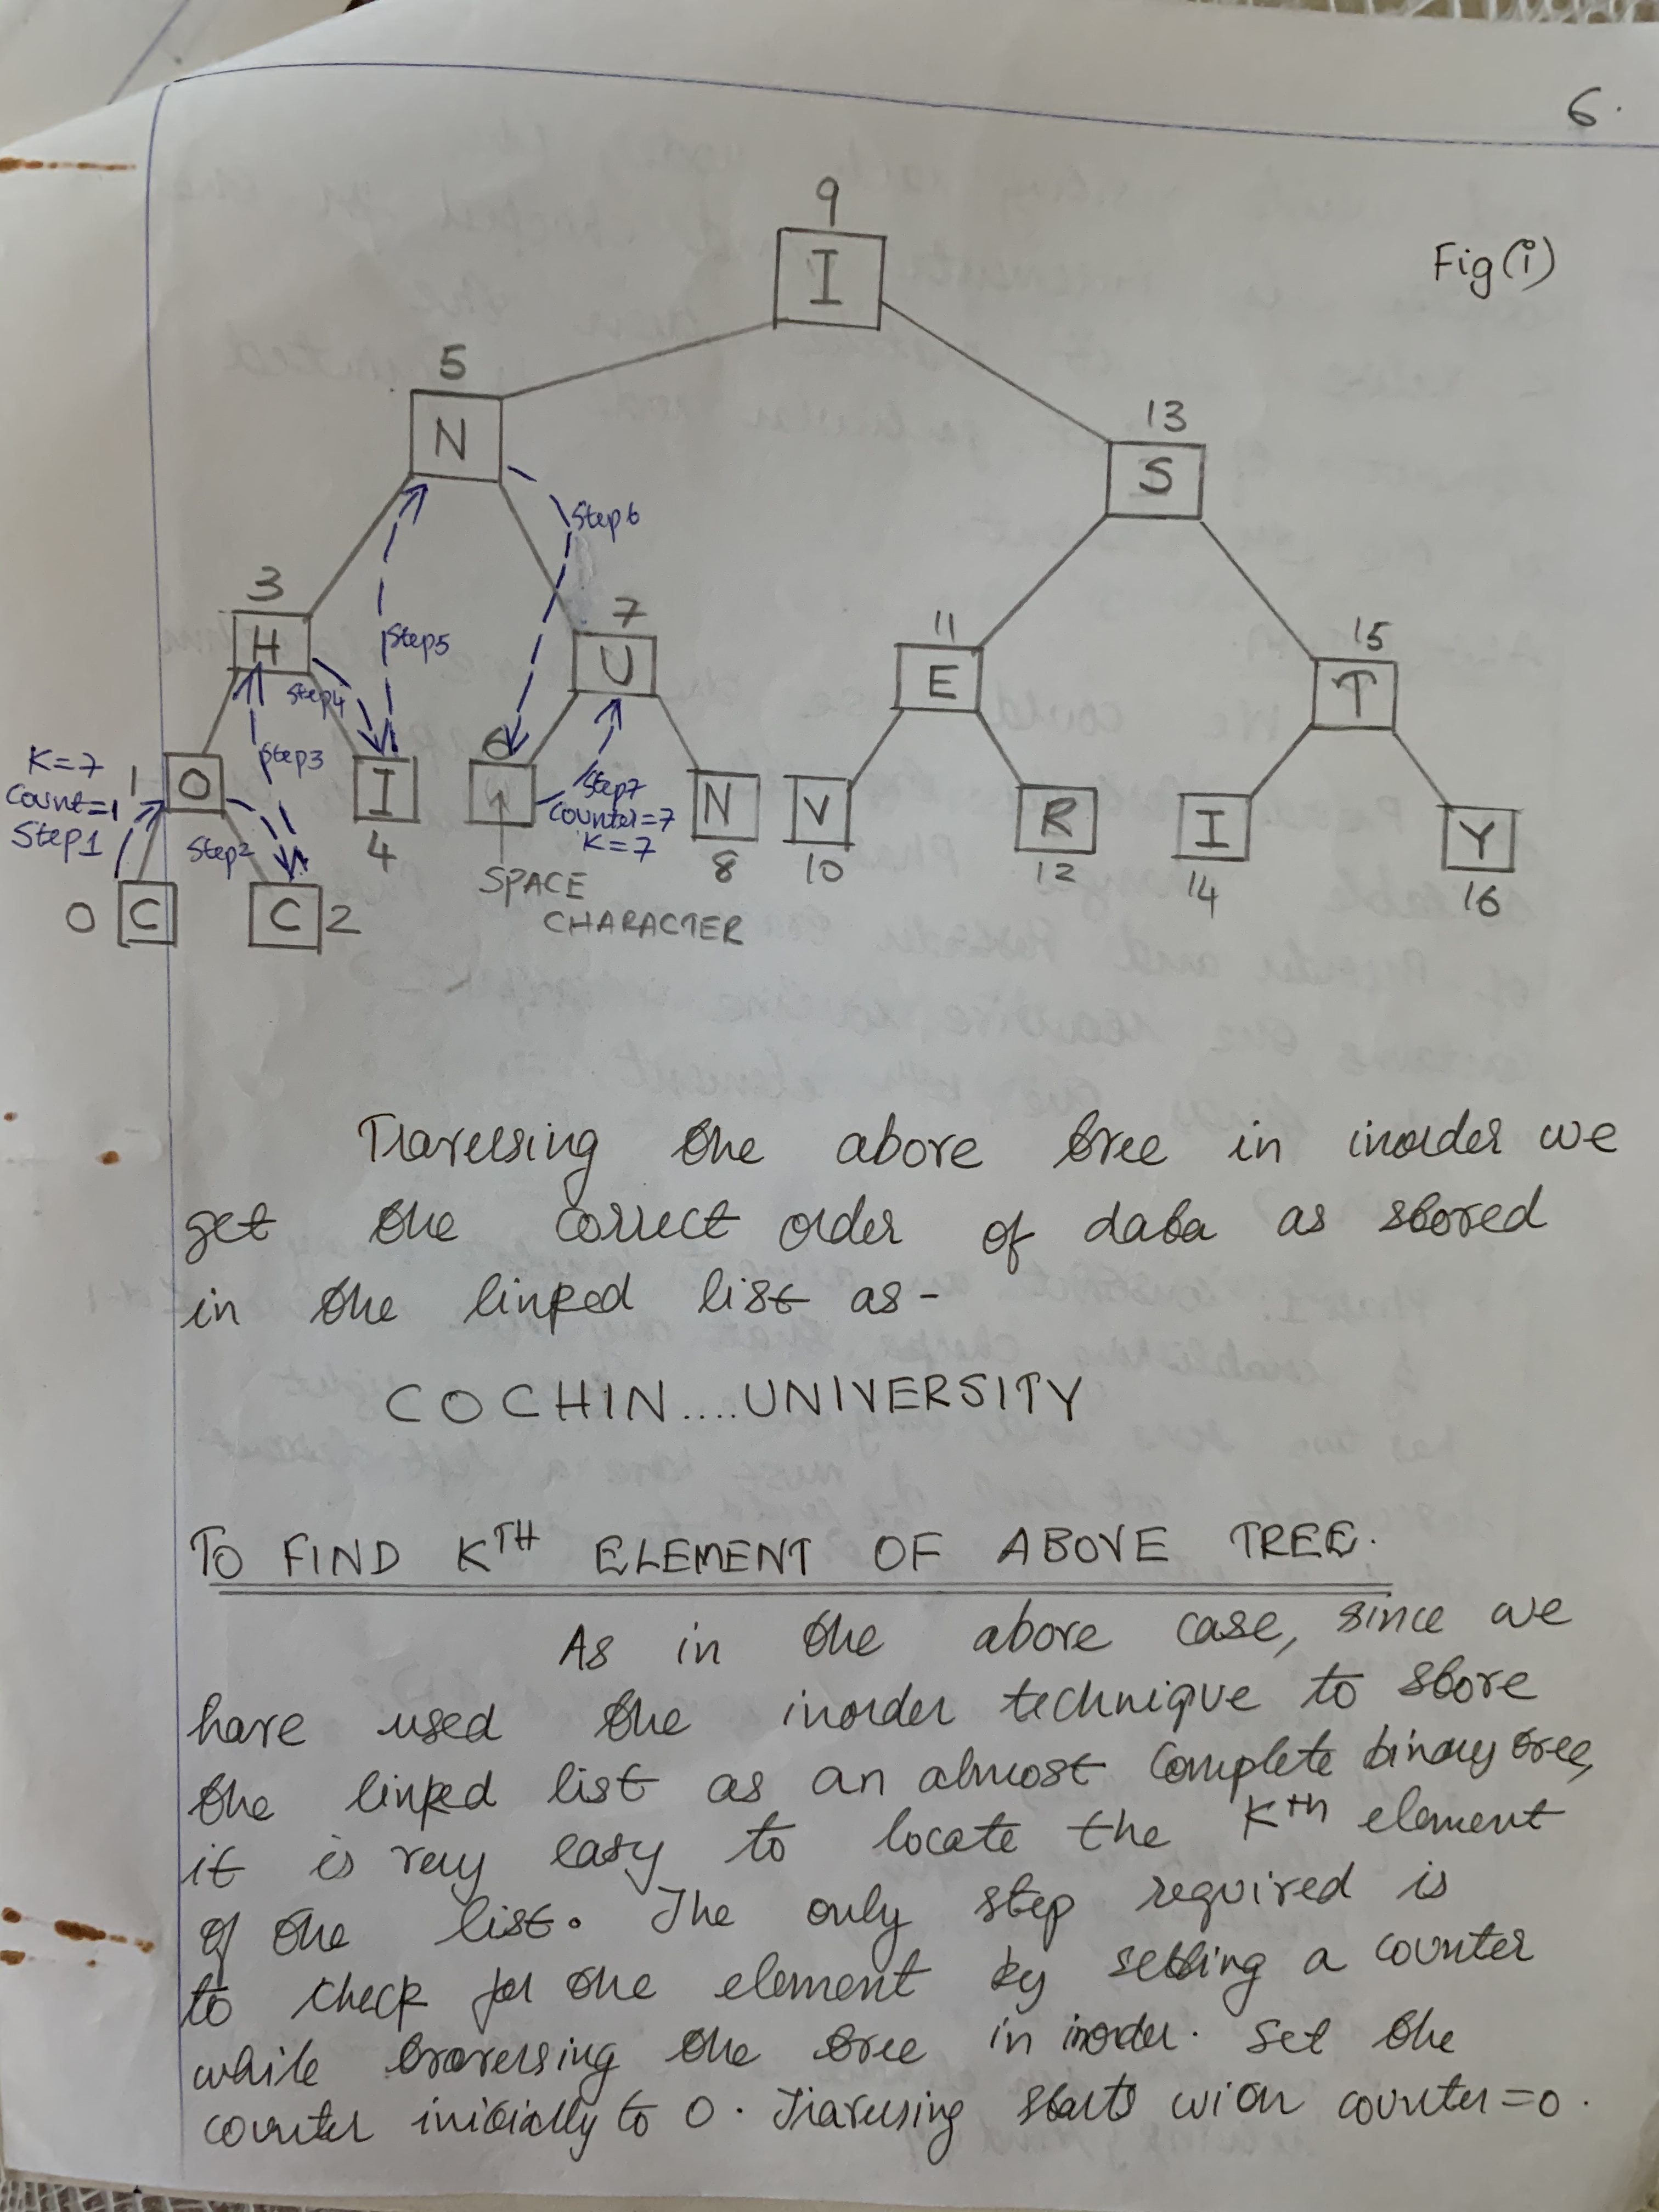 Linked list as an almost complete binary tree